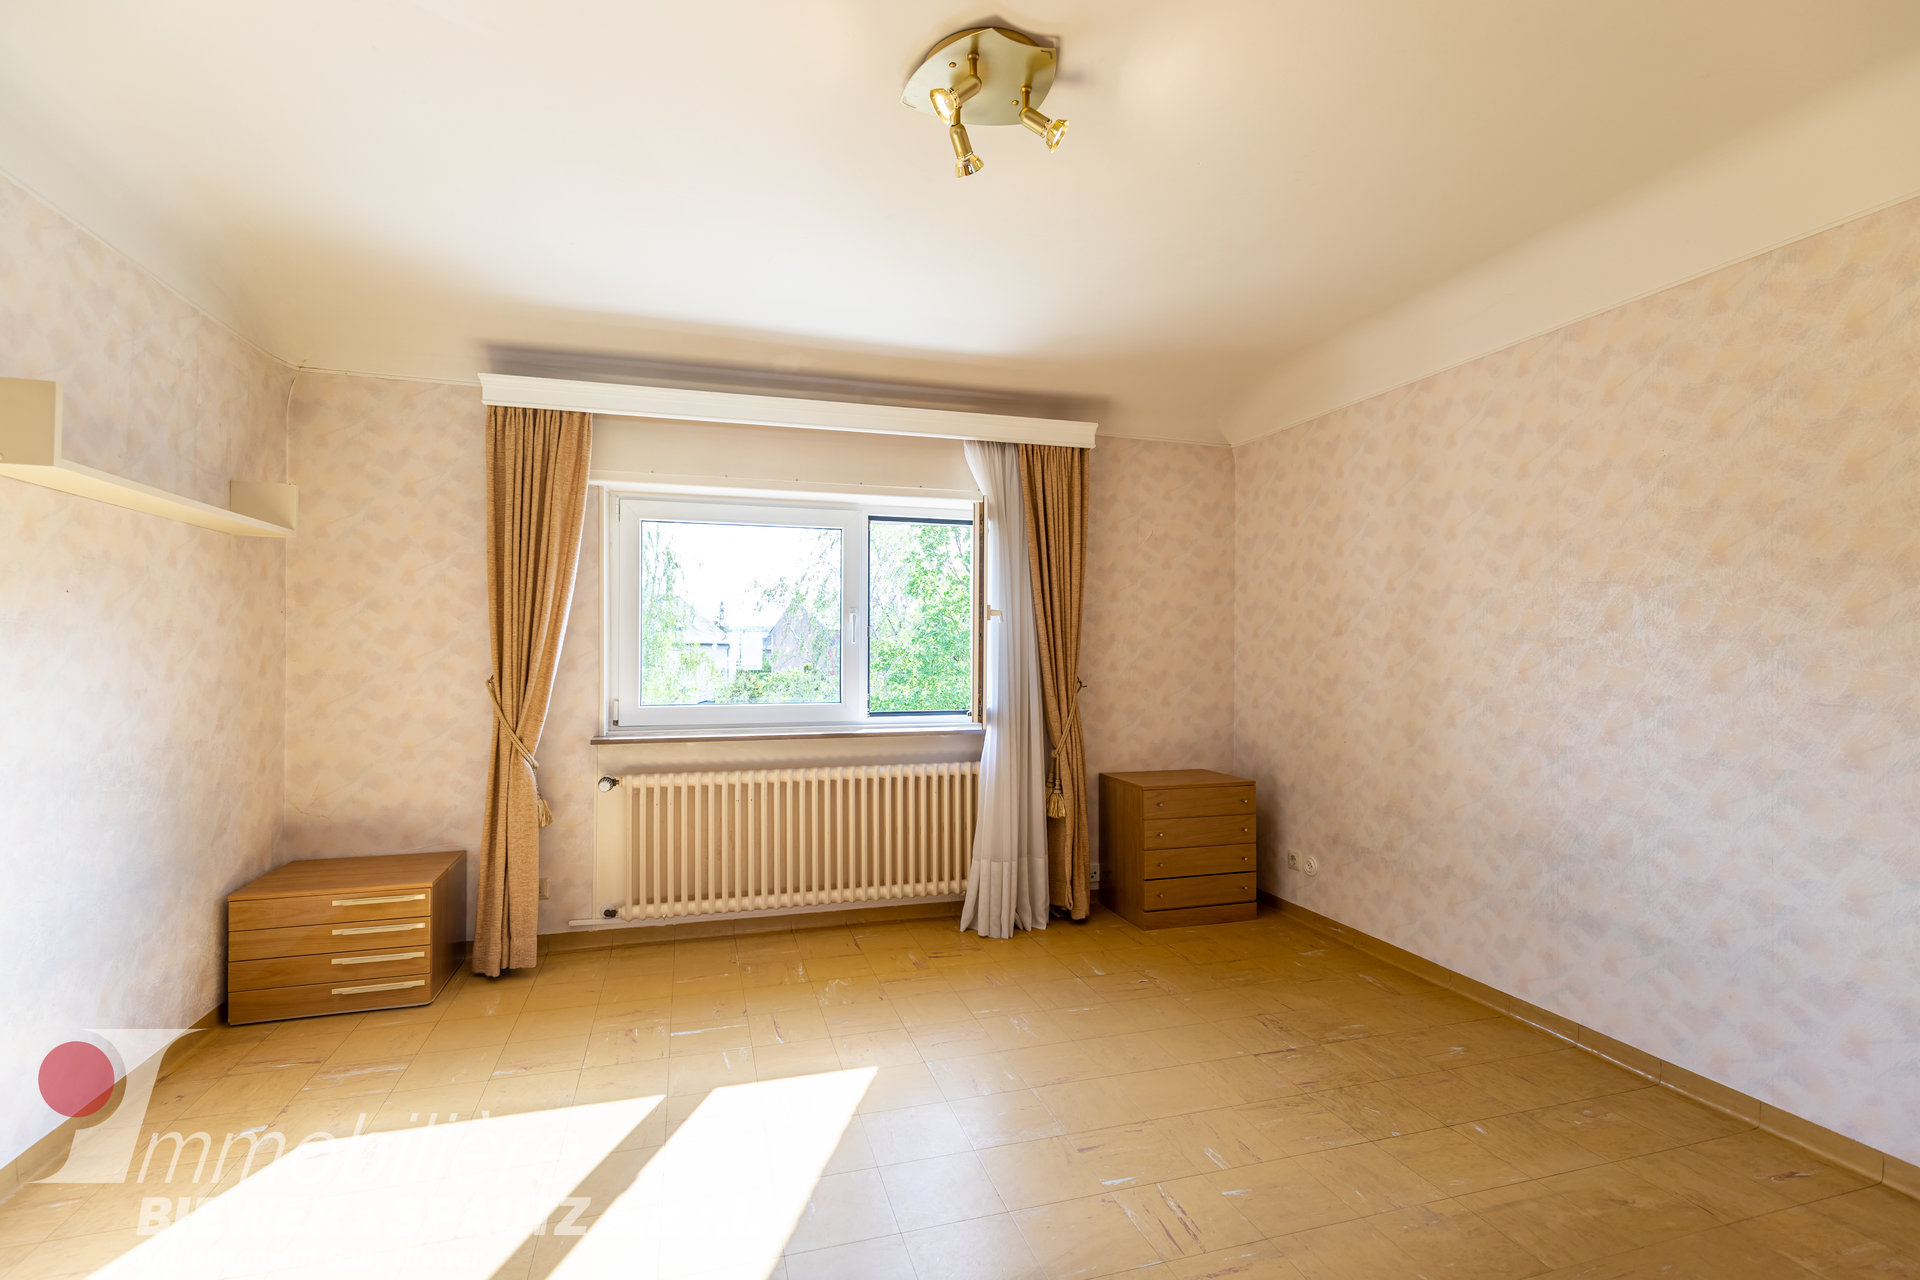 UNDER SALES AGREEMENT - semi-detached house with 2 bedrooms in Esch-sur-Alzette